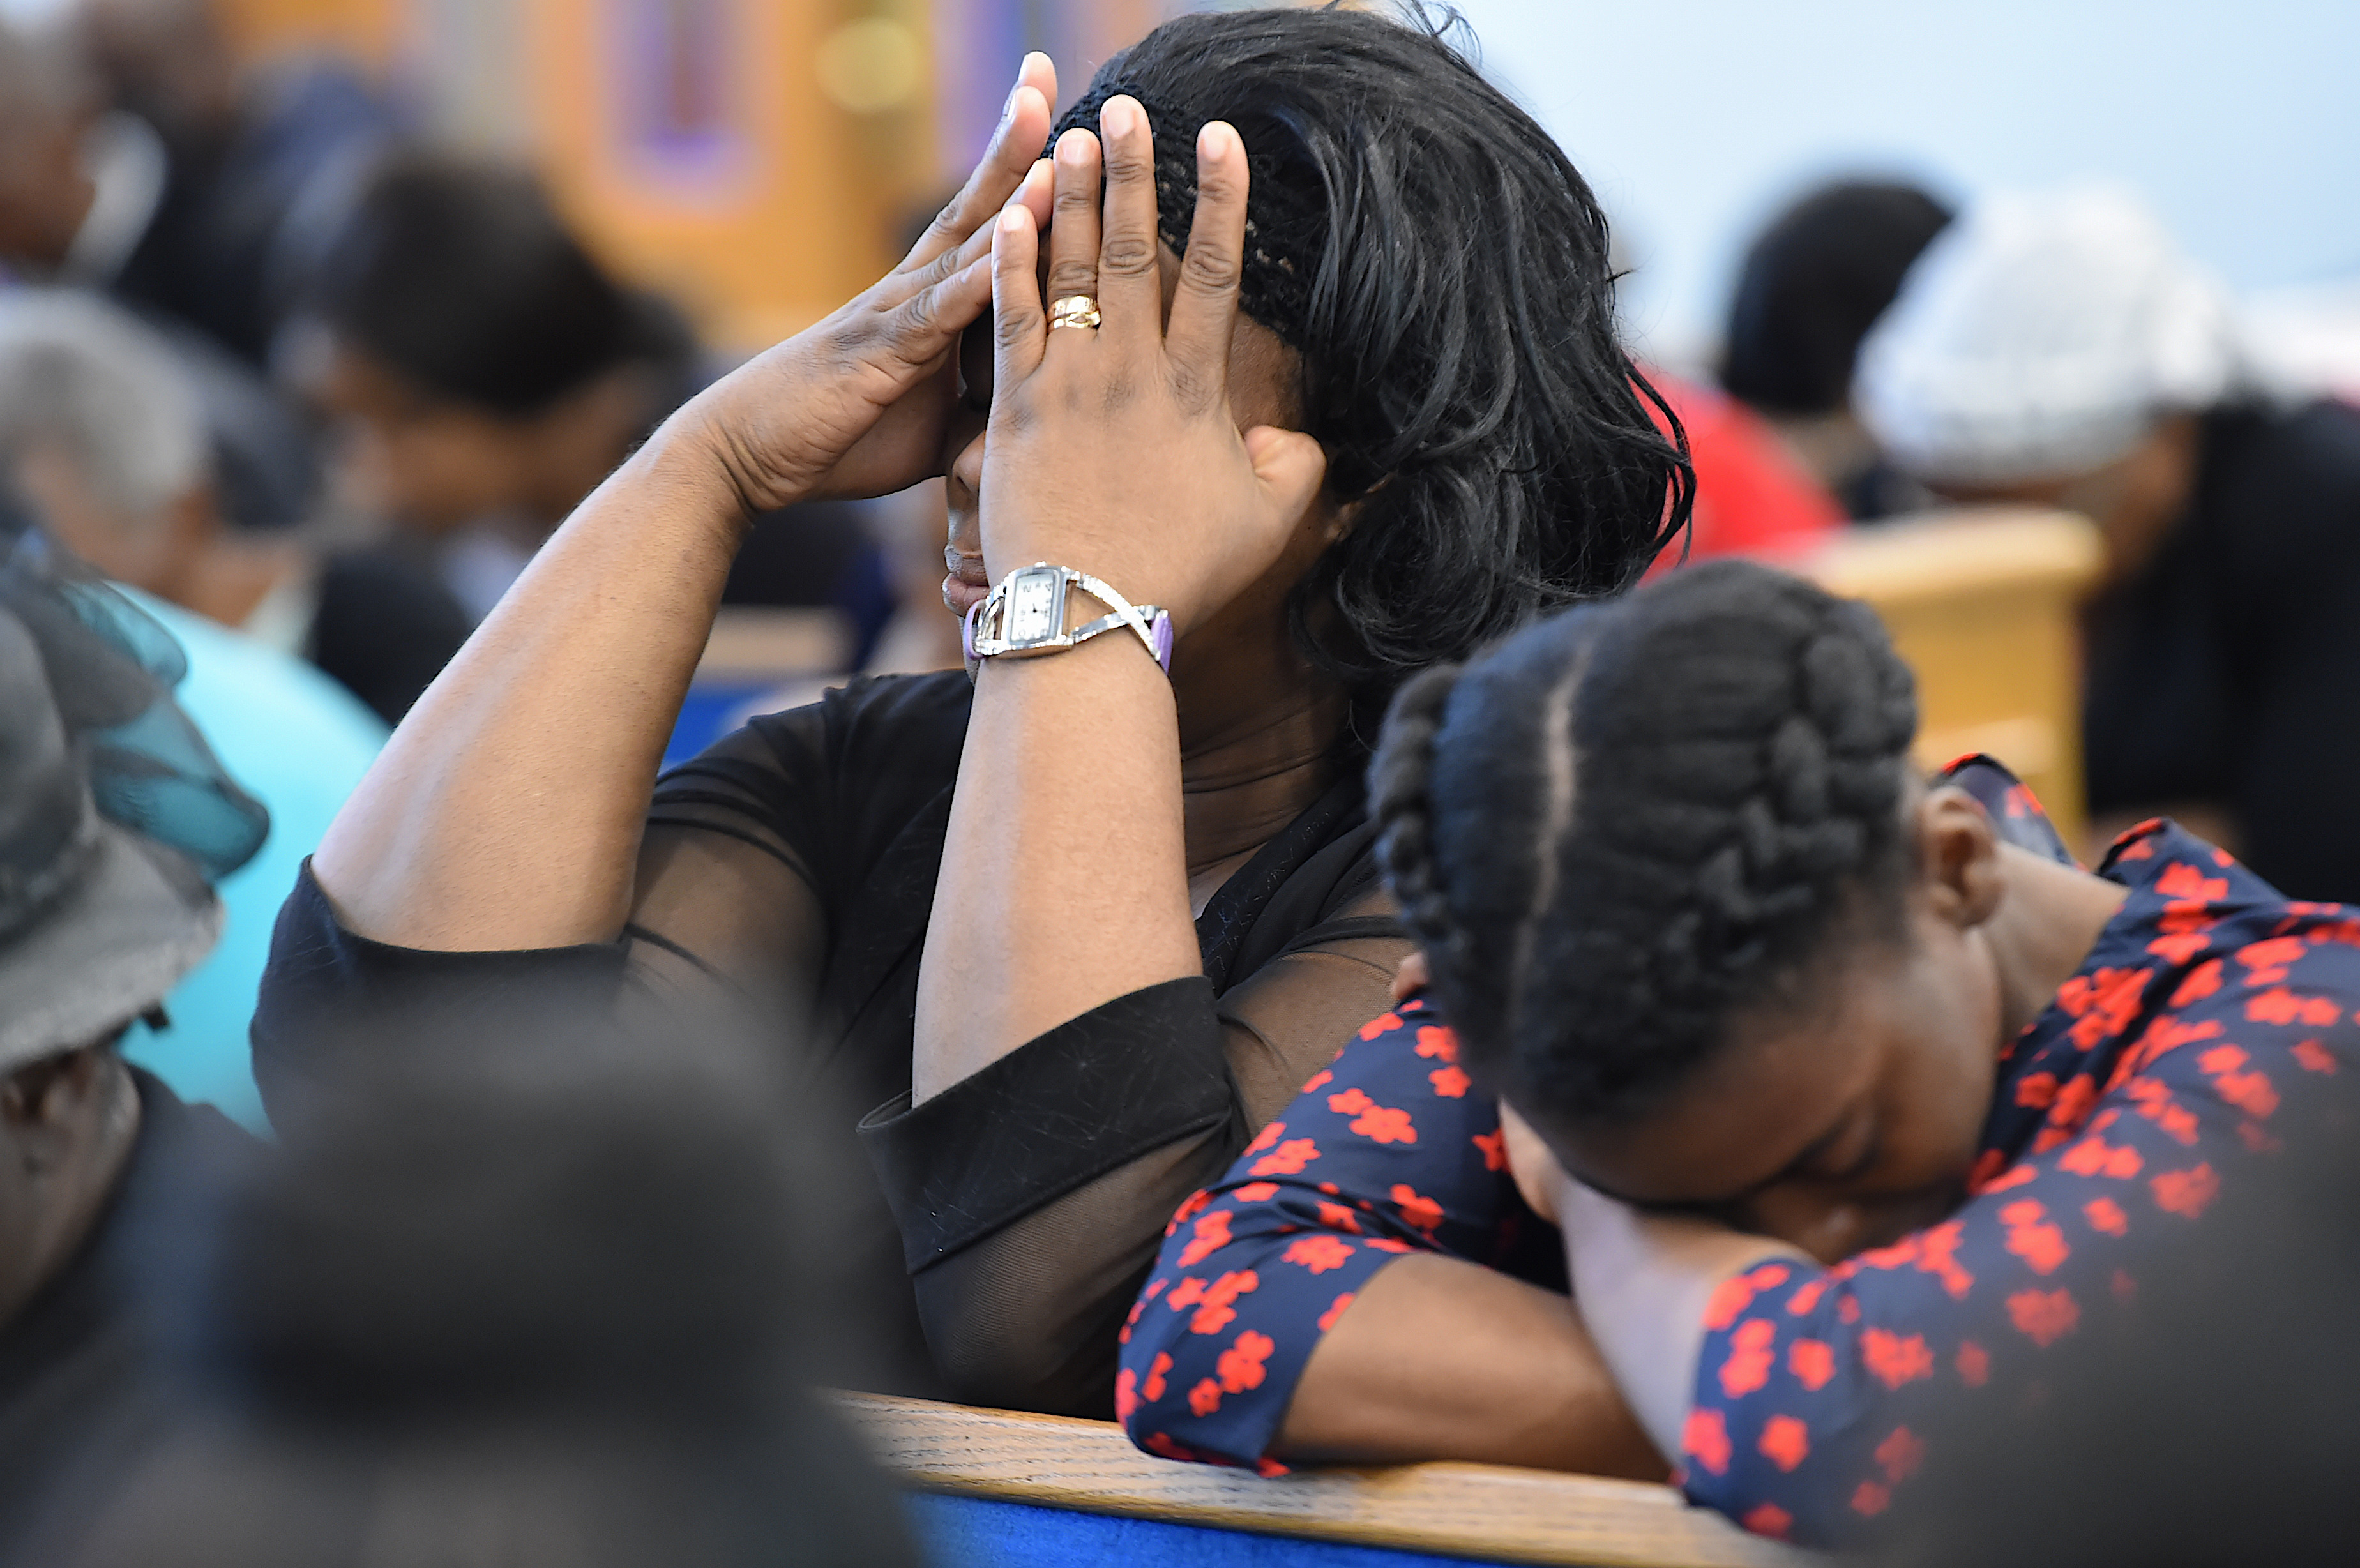 A congregation in prayer during Thrive NYC's Faith Weekend at the East New York Seventh Day Adventist Church  (Todd Maisel/Bklyner)